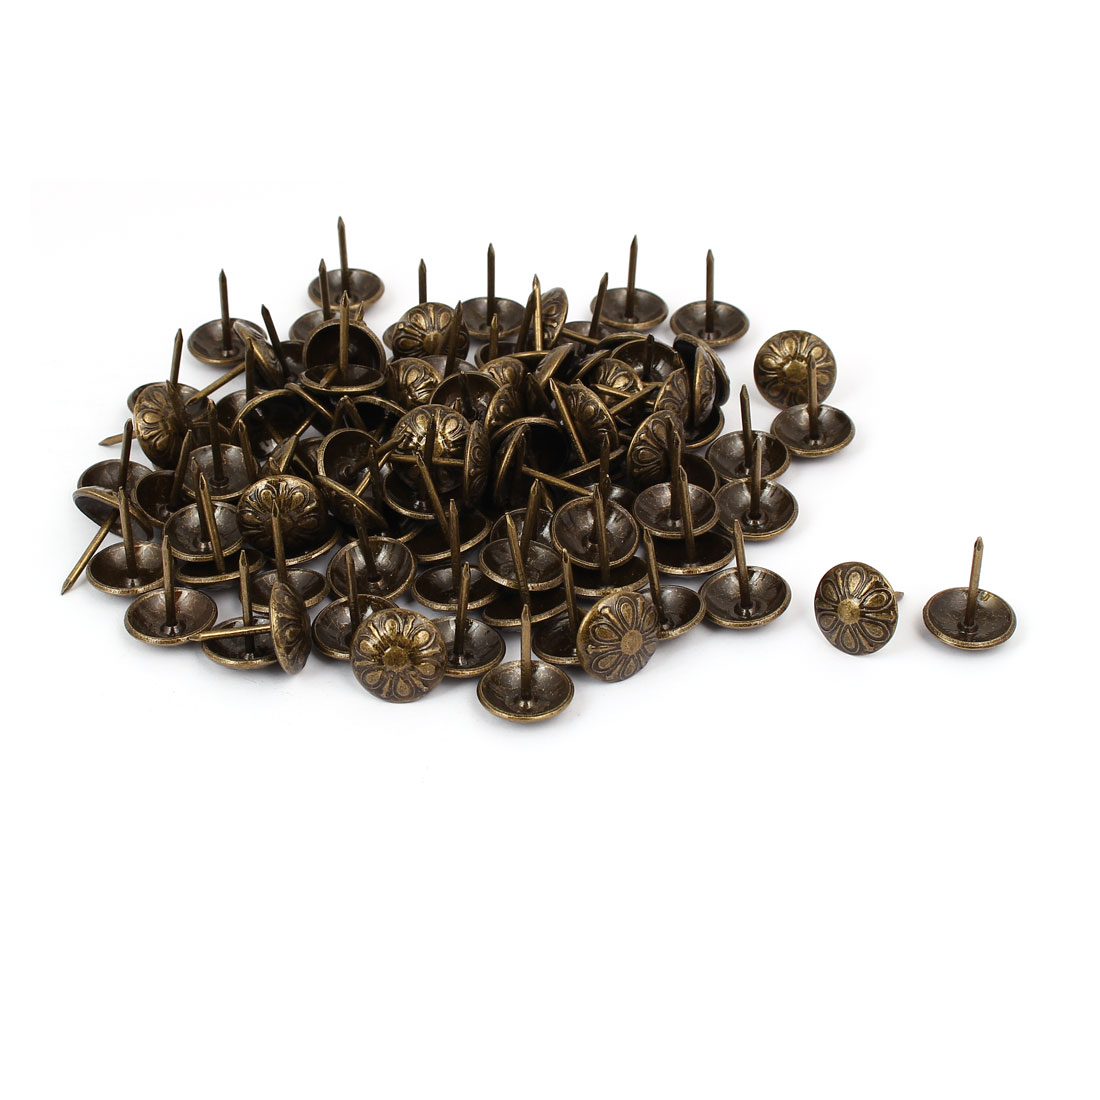 Household Metal Round Head Upholstery Tack Nail Bronze Tone 16mm Dia 100pcs